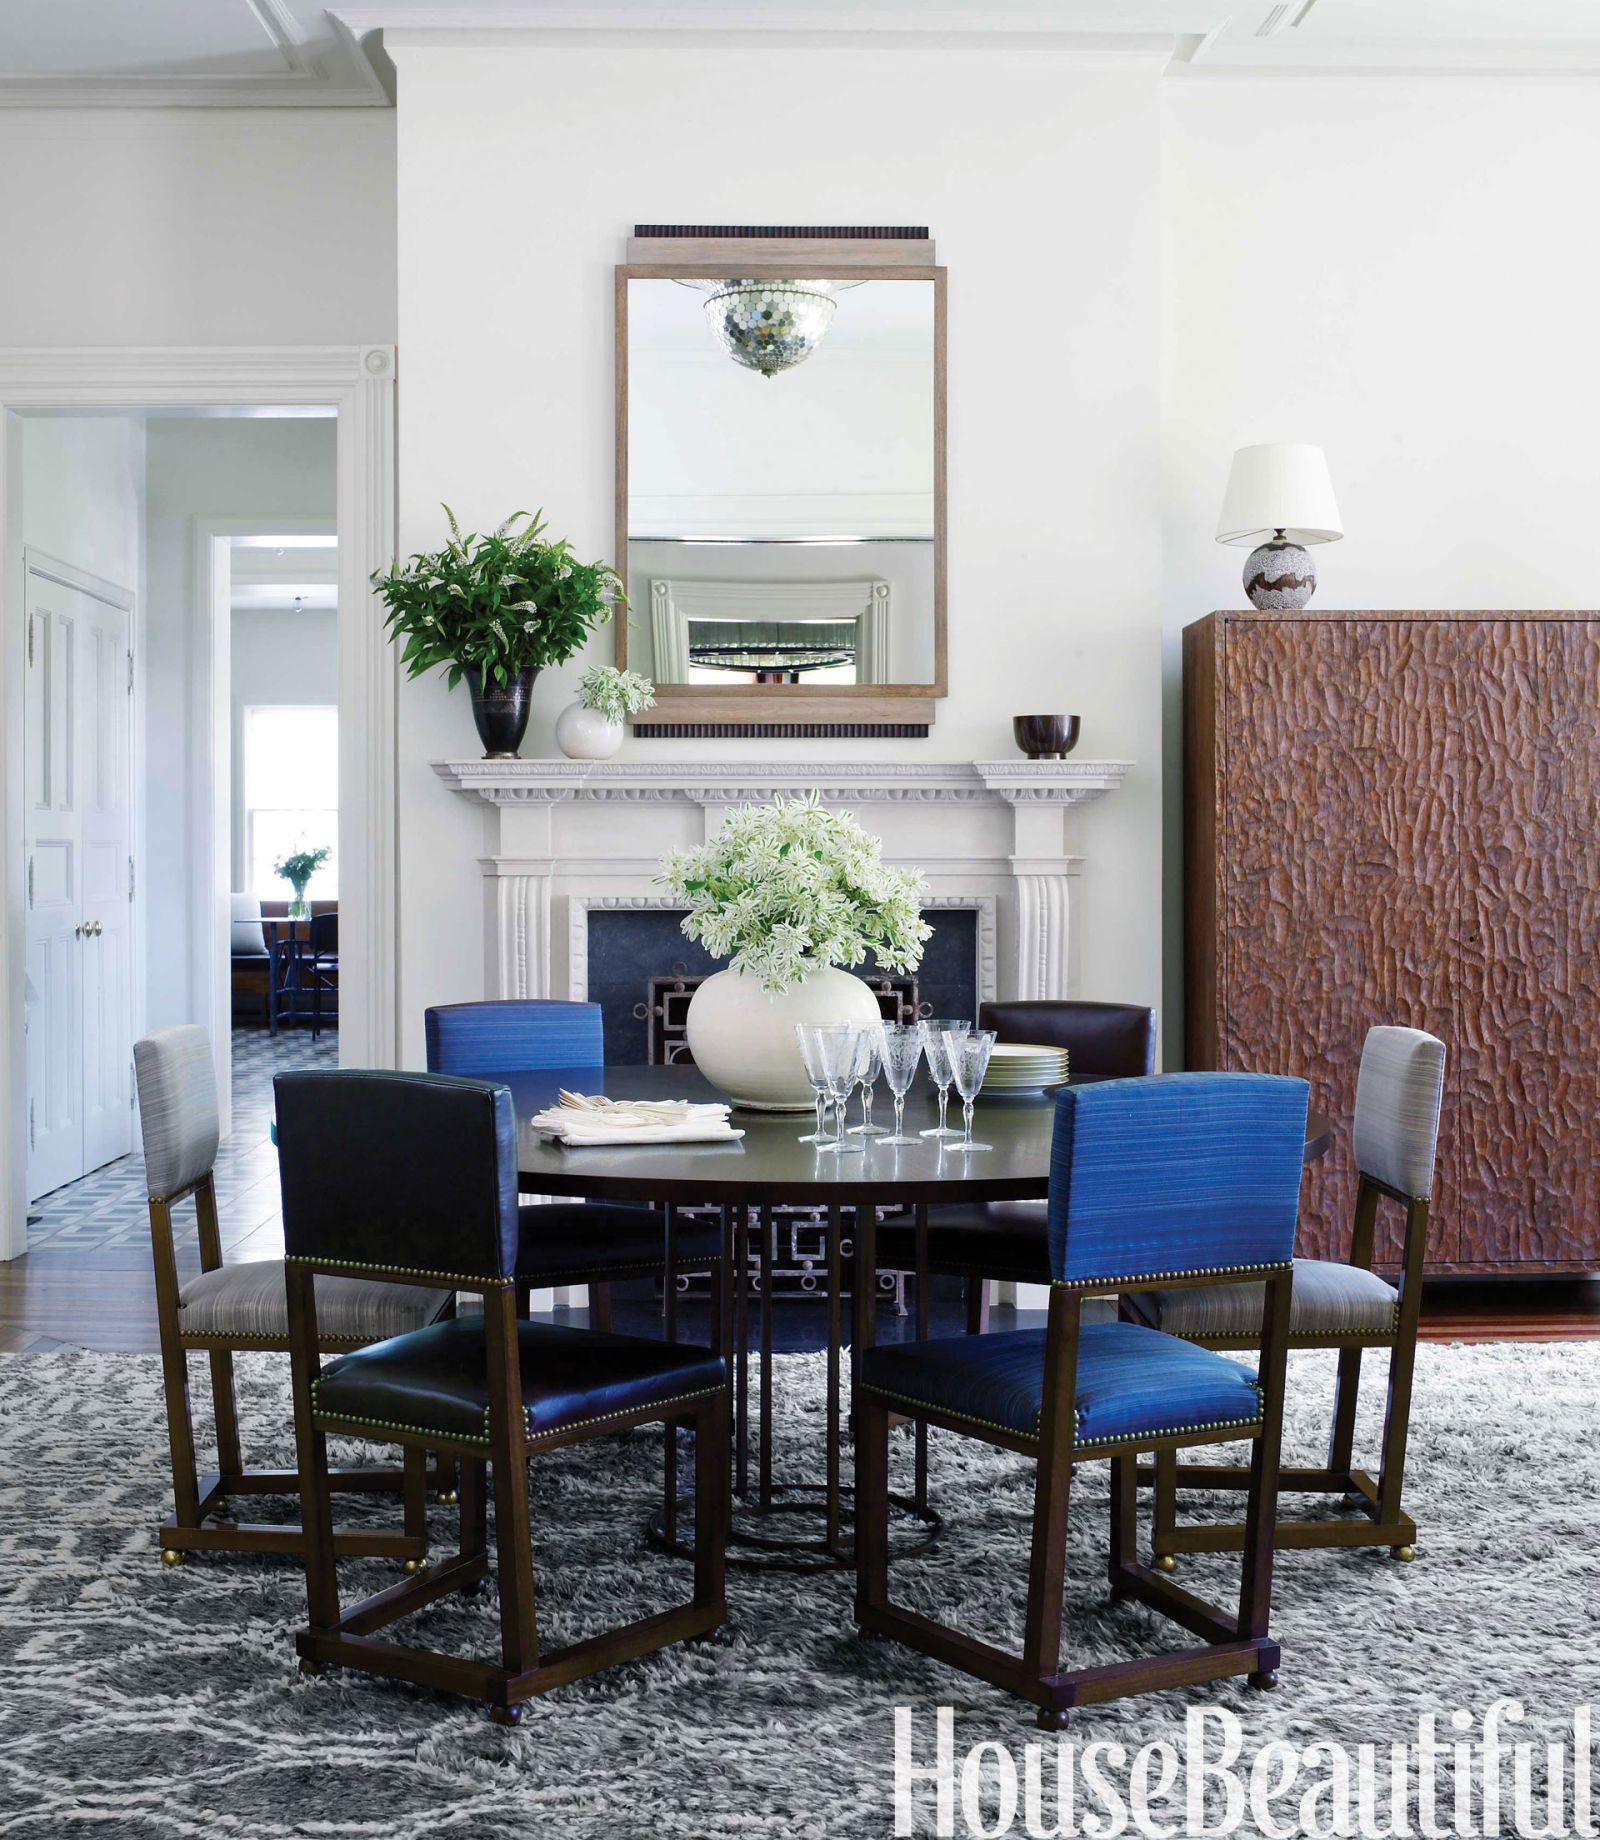 1920s swedish chairs. Alexandra Rowley. Dining Room & Modern Victorian House - Victorian House Decorating Ideas